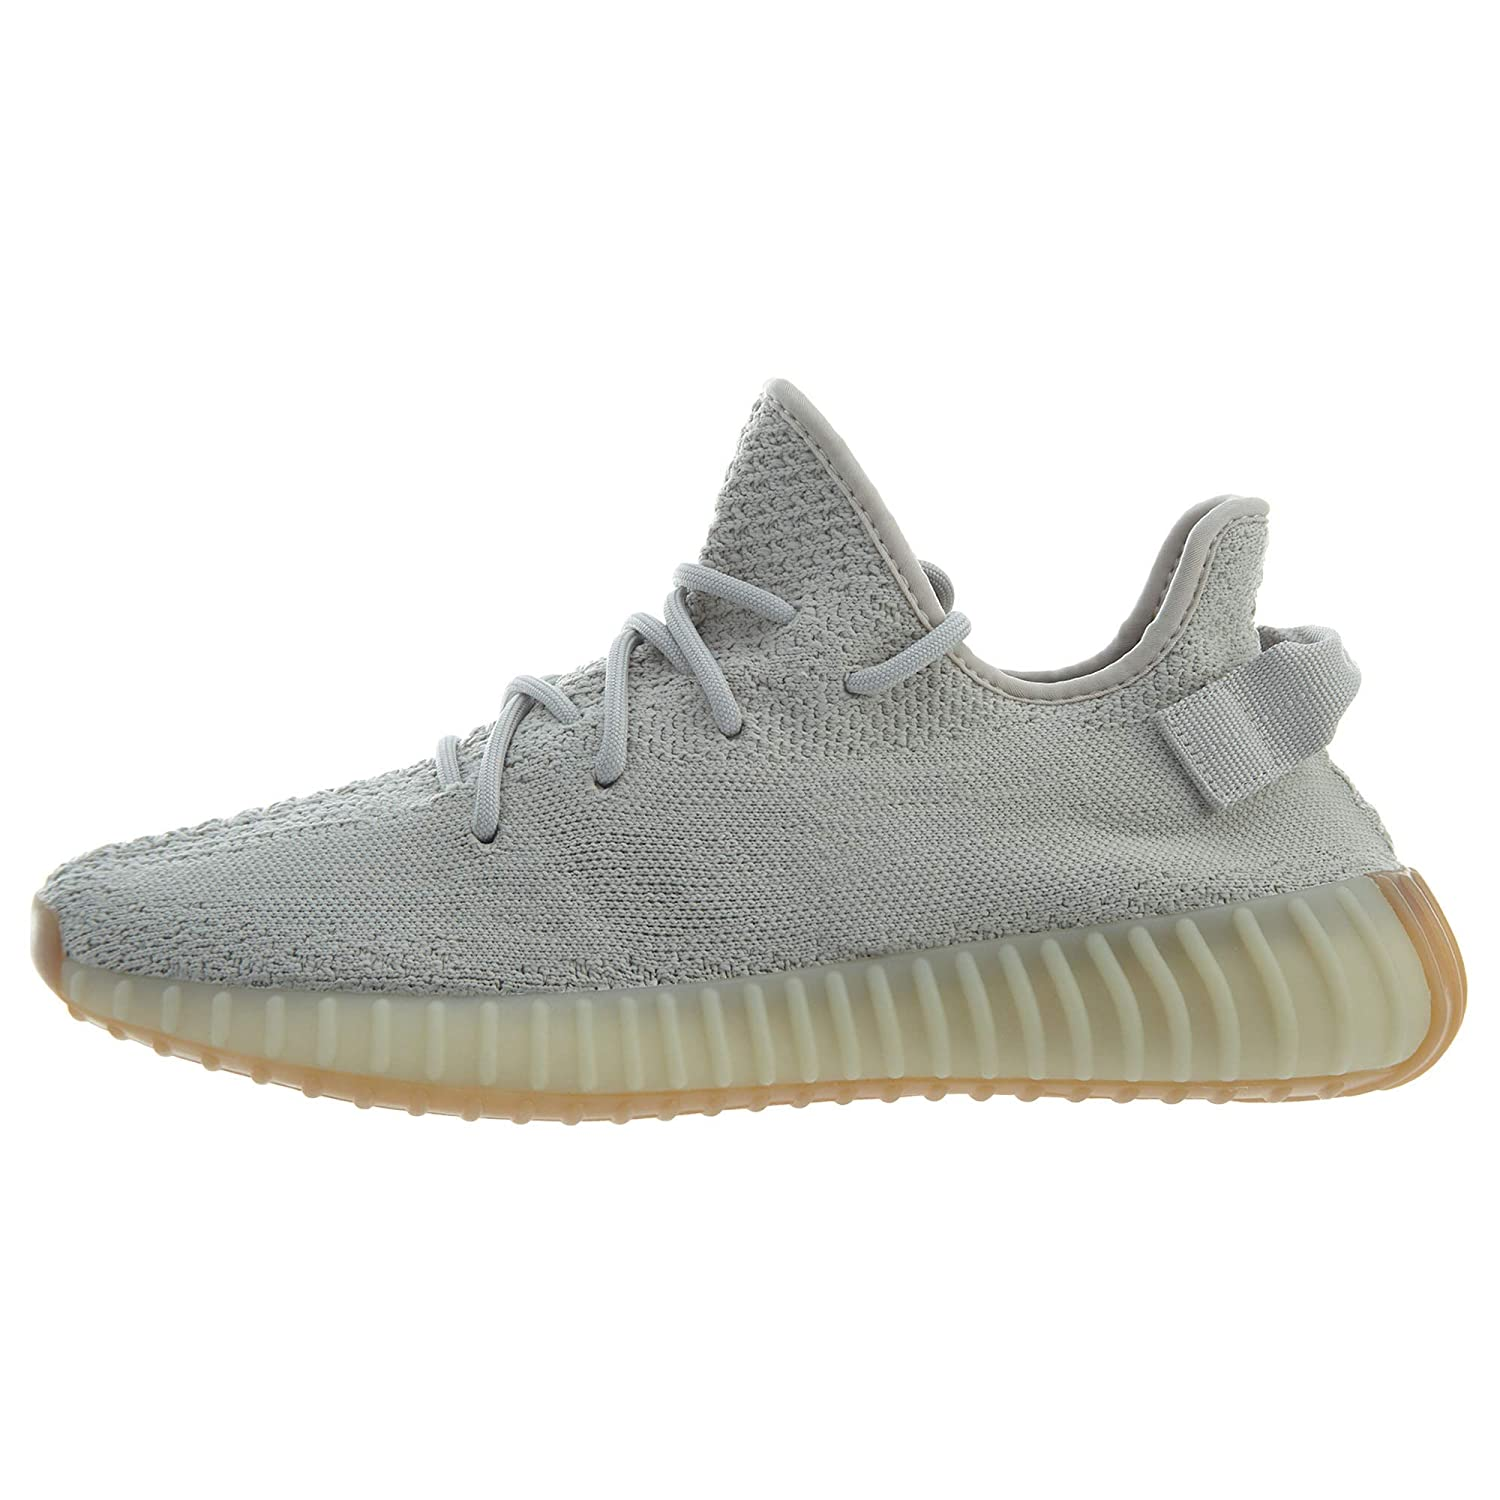 adidas Mens Yeezy Boost 350 V2 Sesame Woven Size 10